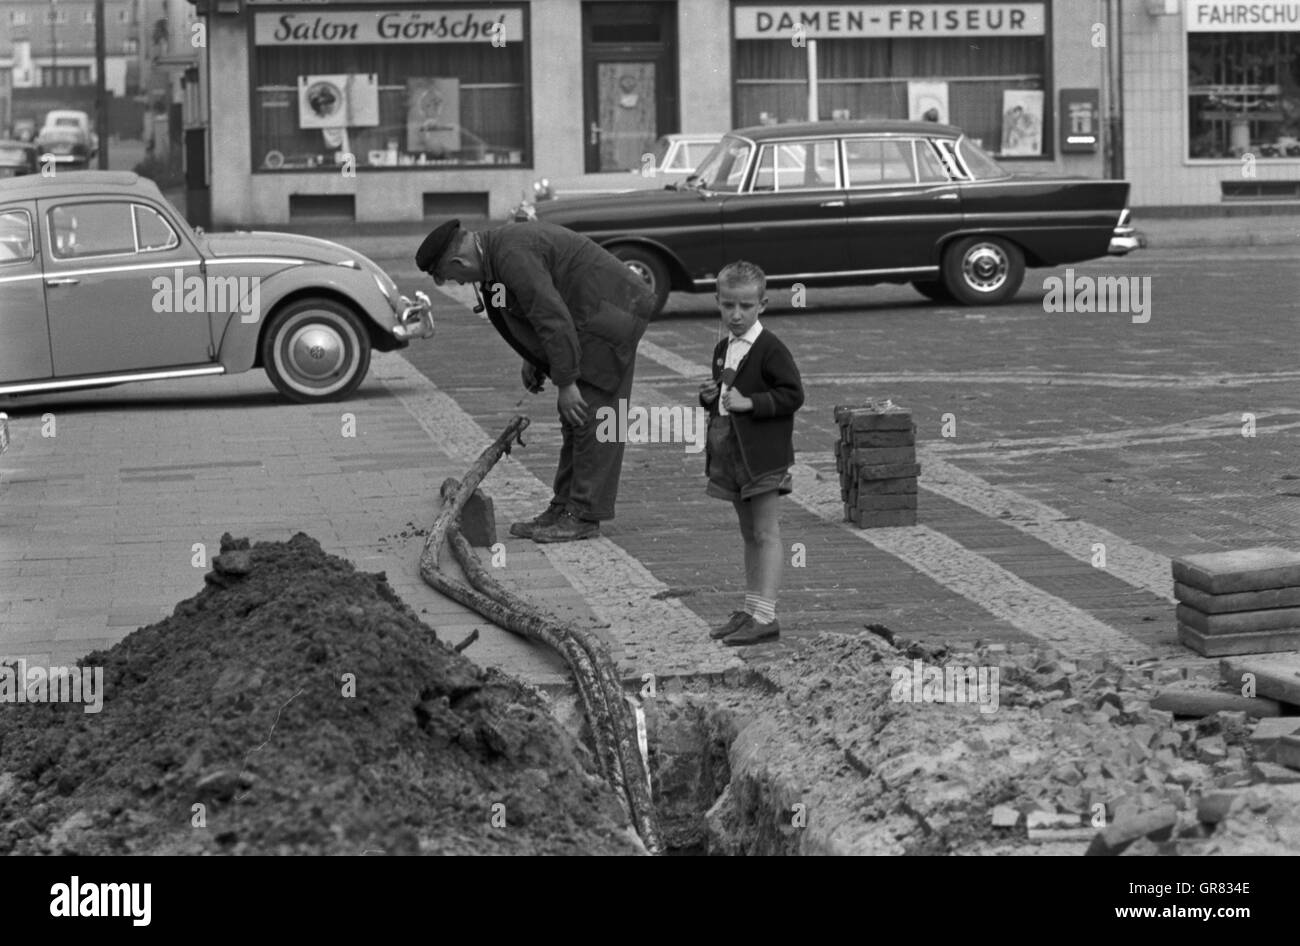 Construction Work Bw 1966 - Stock Image